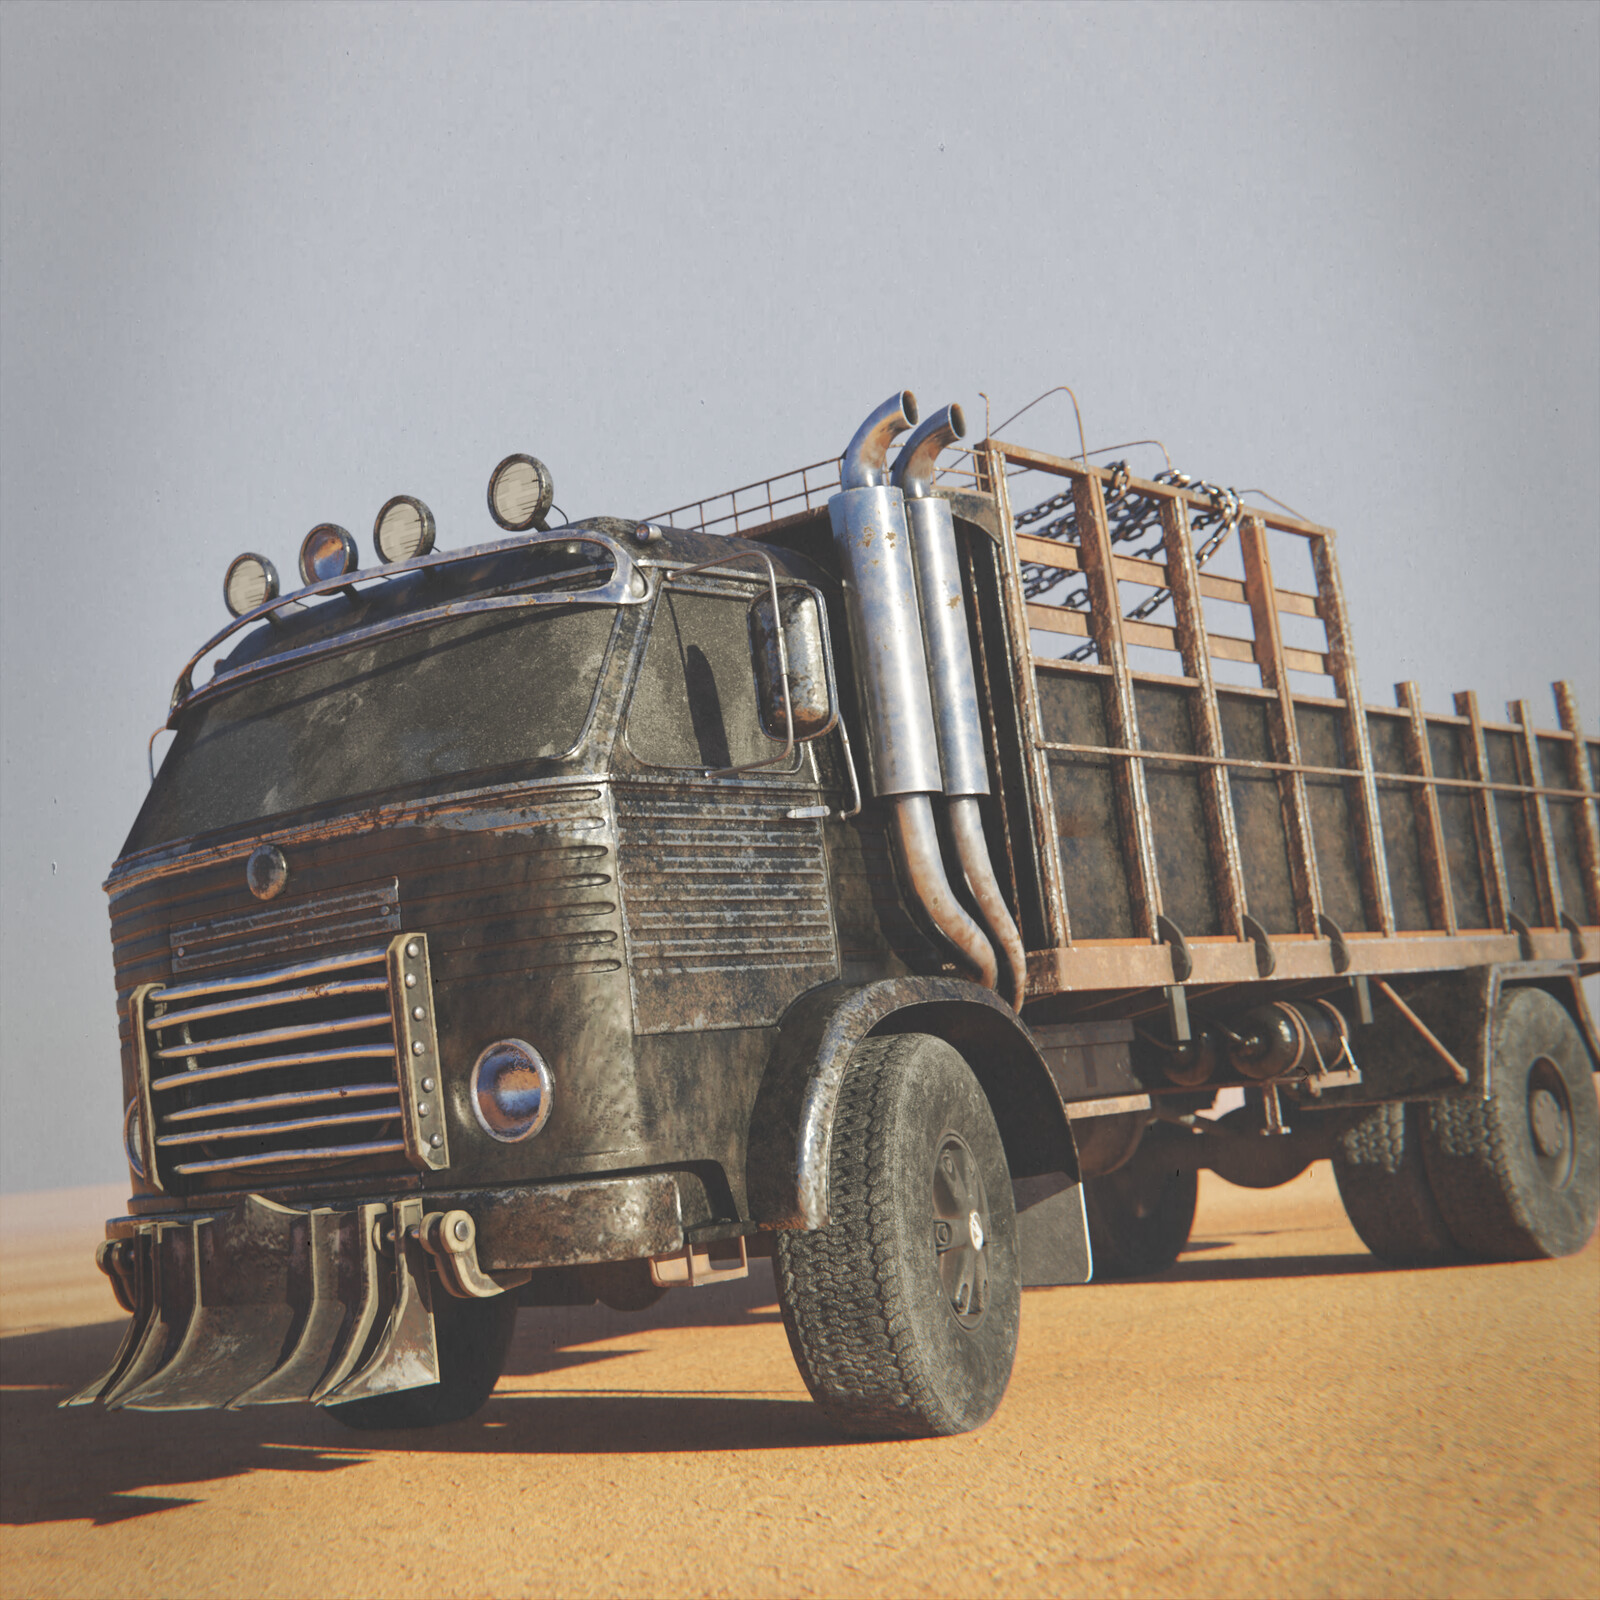 Post apocalyptic old Pegaso truck